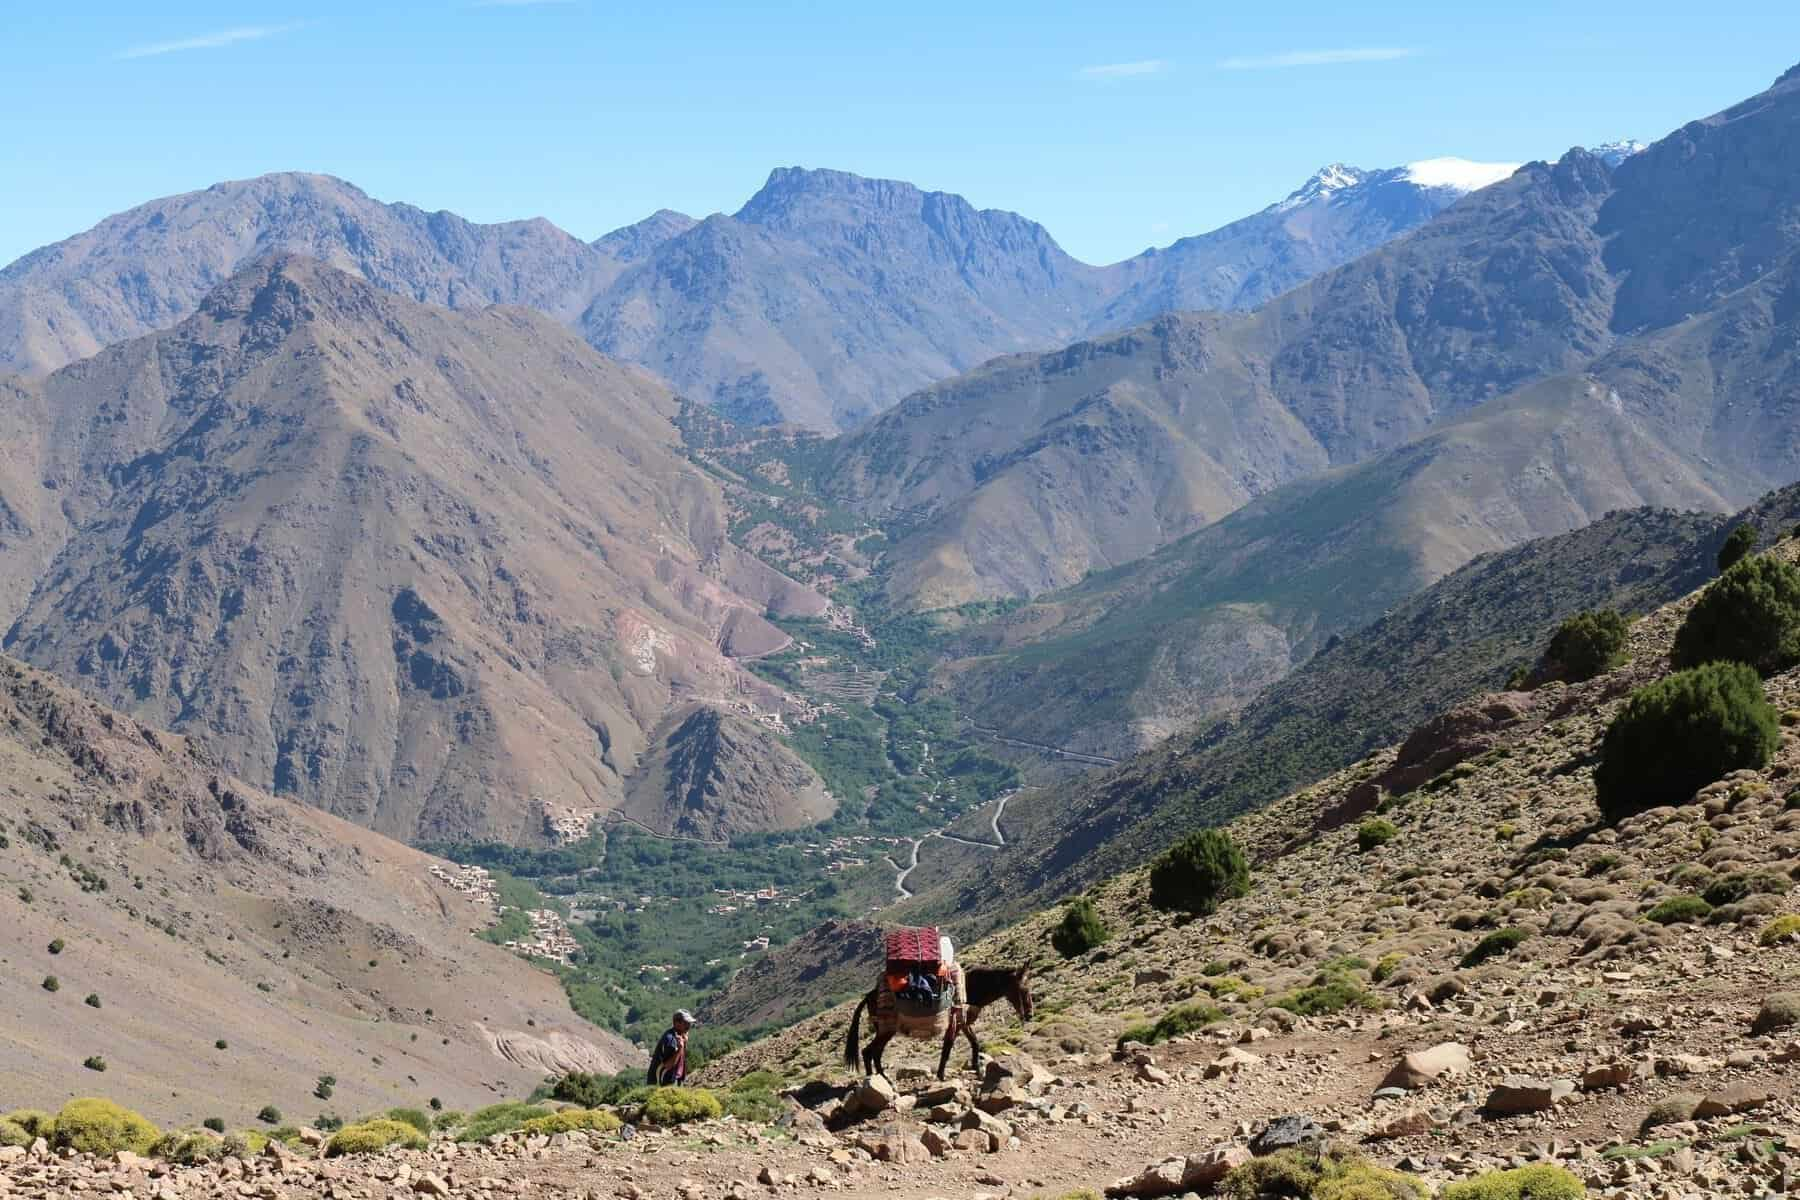 Morocco, High Atlas Mountains, patrick-ogilvie-lP3COOnx-Oc-unsplash